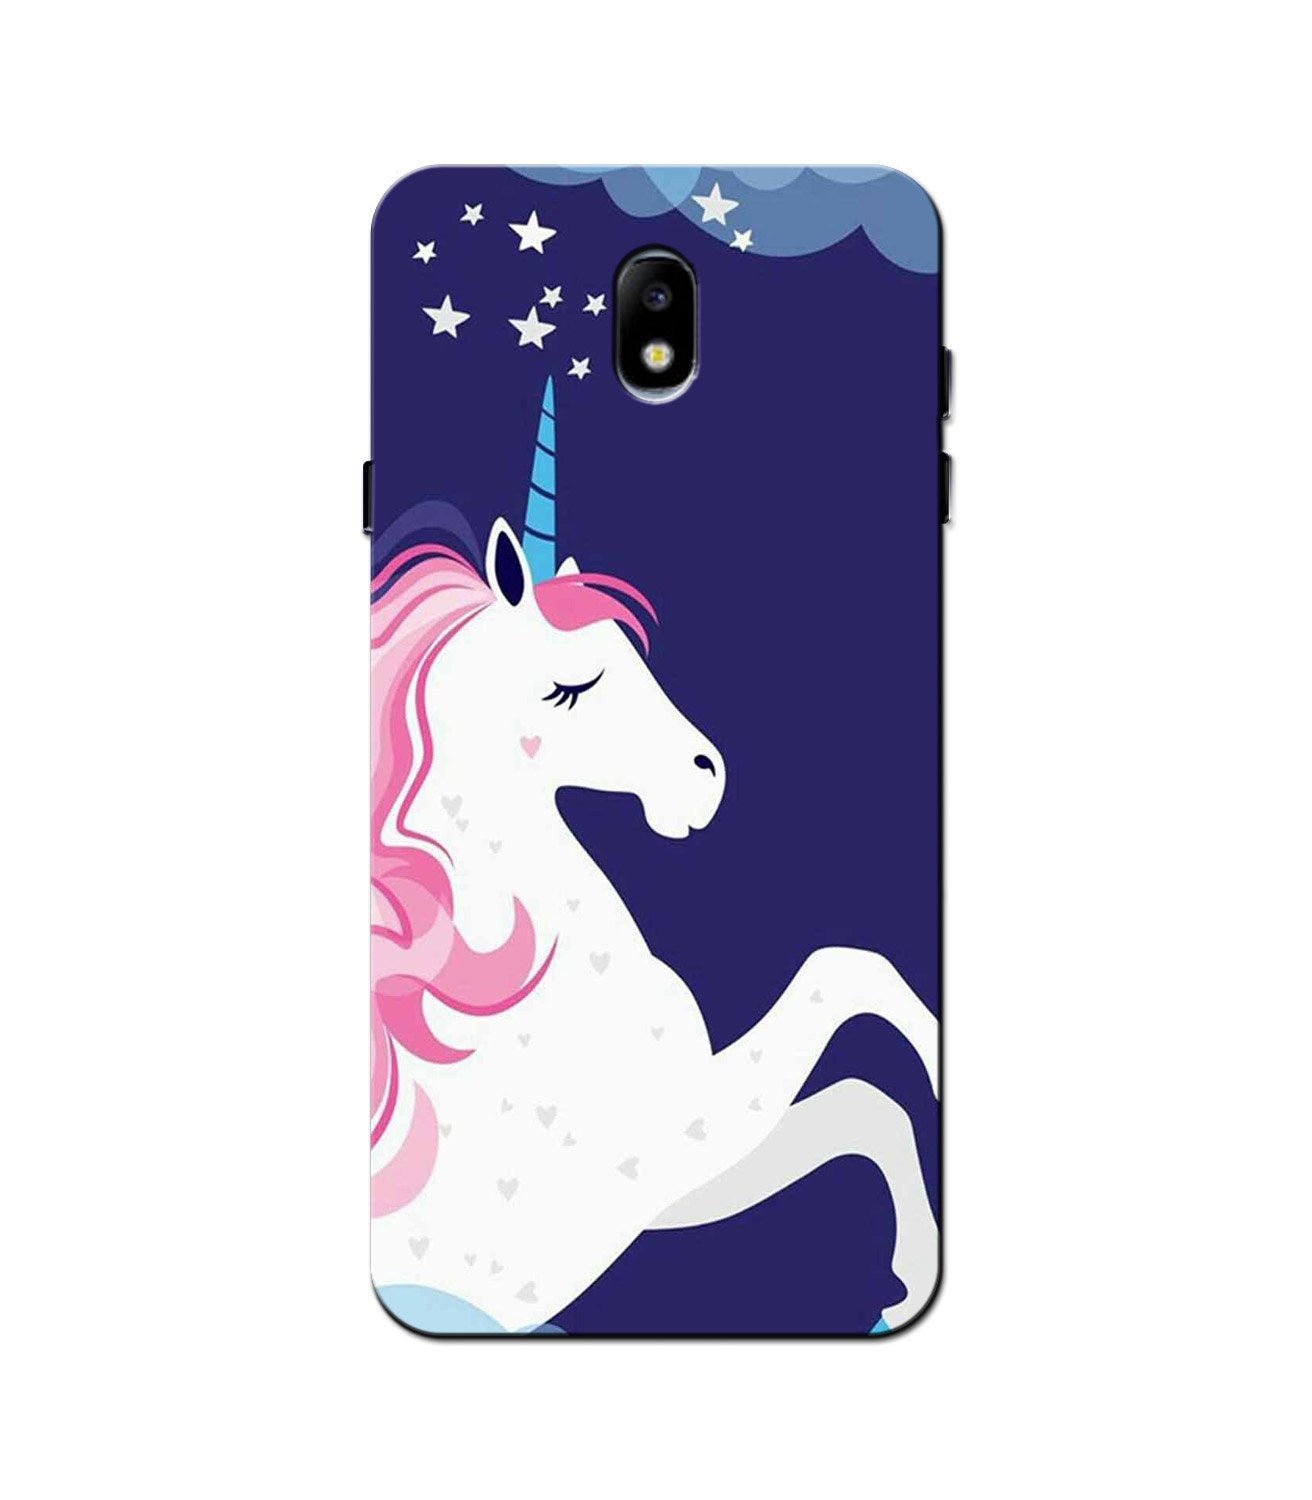 Unicorn Mobile Back Case for Galaxy J5 Pro  (Design - 365)